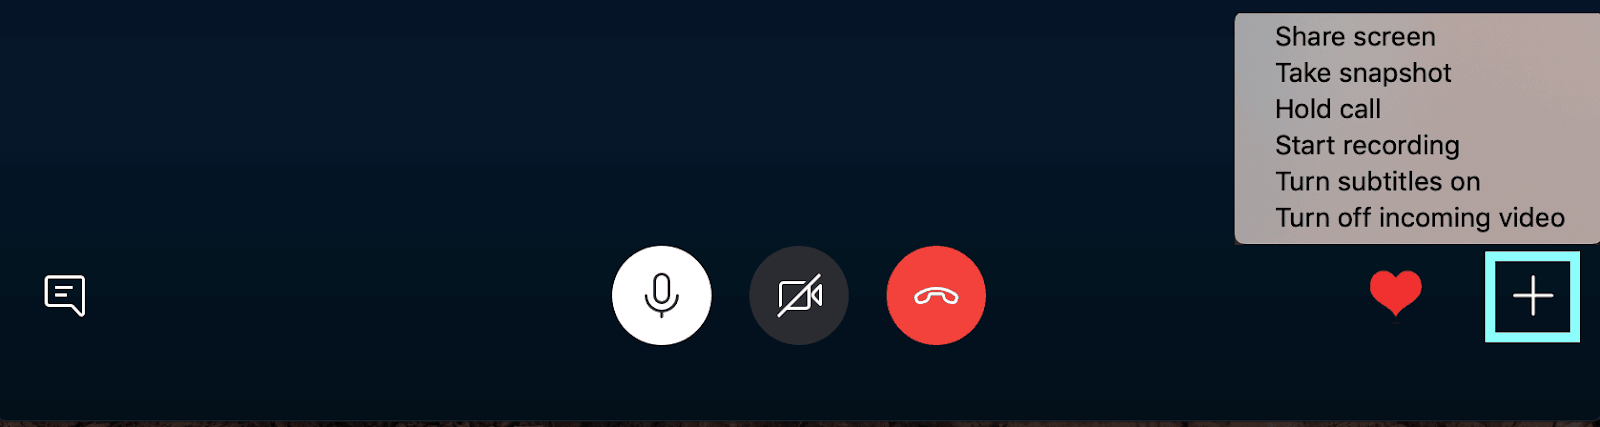 other features during call